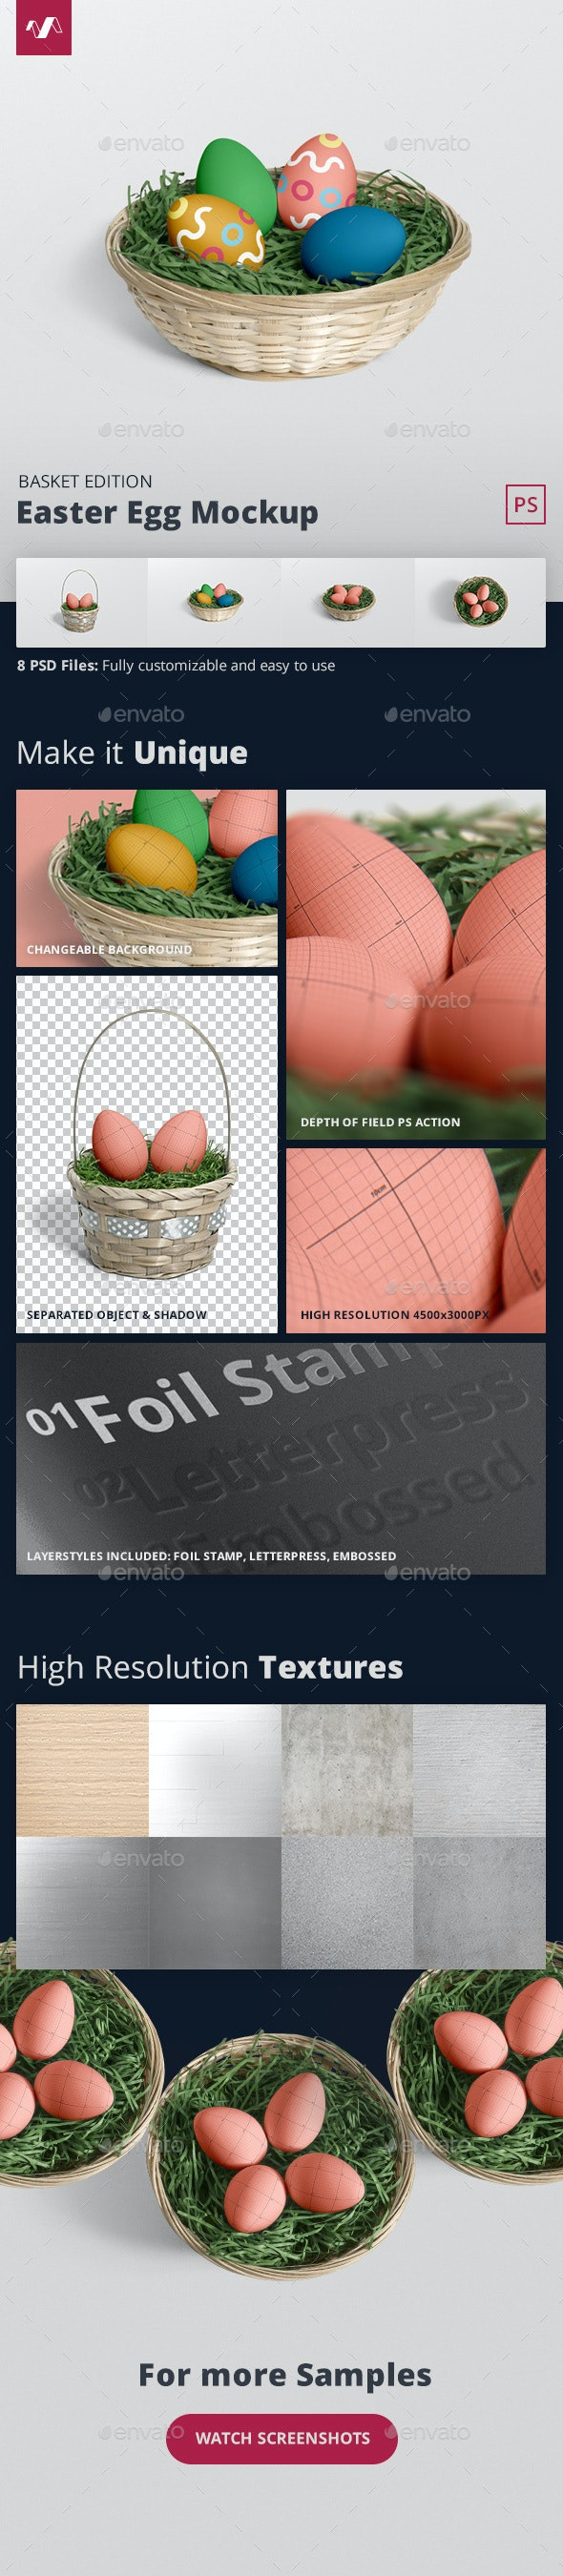 Easter Egg Mockup Basket Edition - Miscellaneous Product Mock-Ups